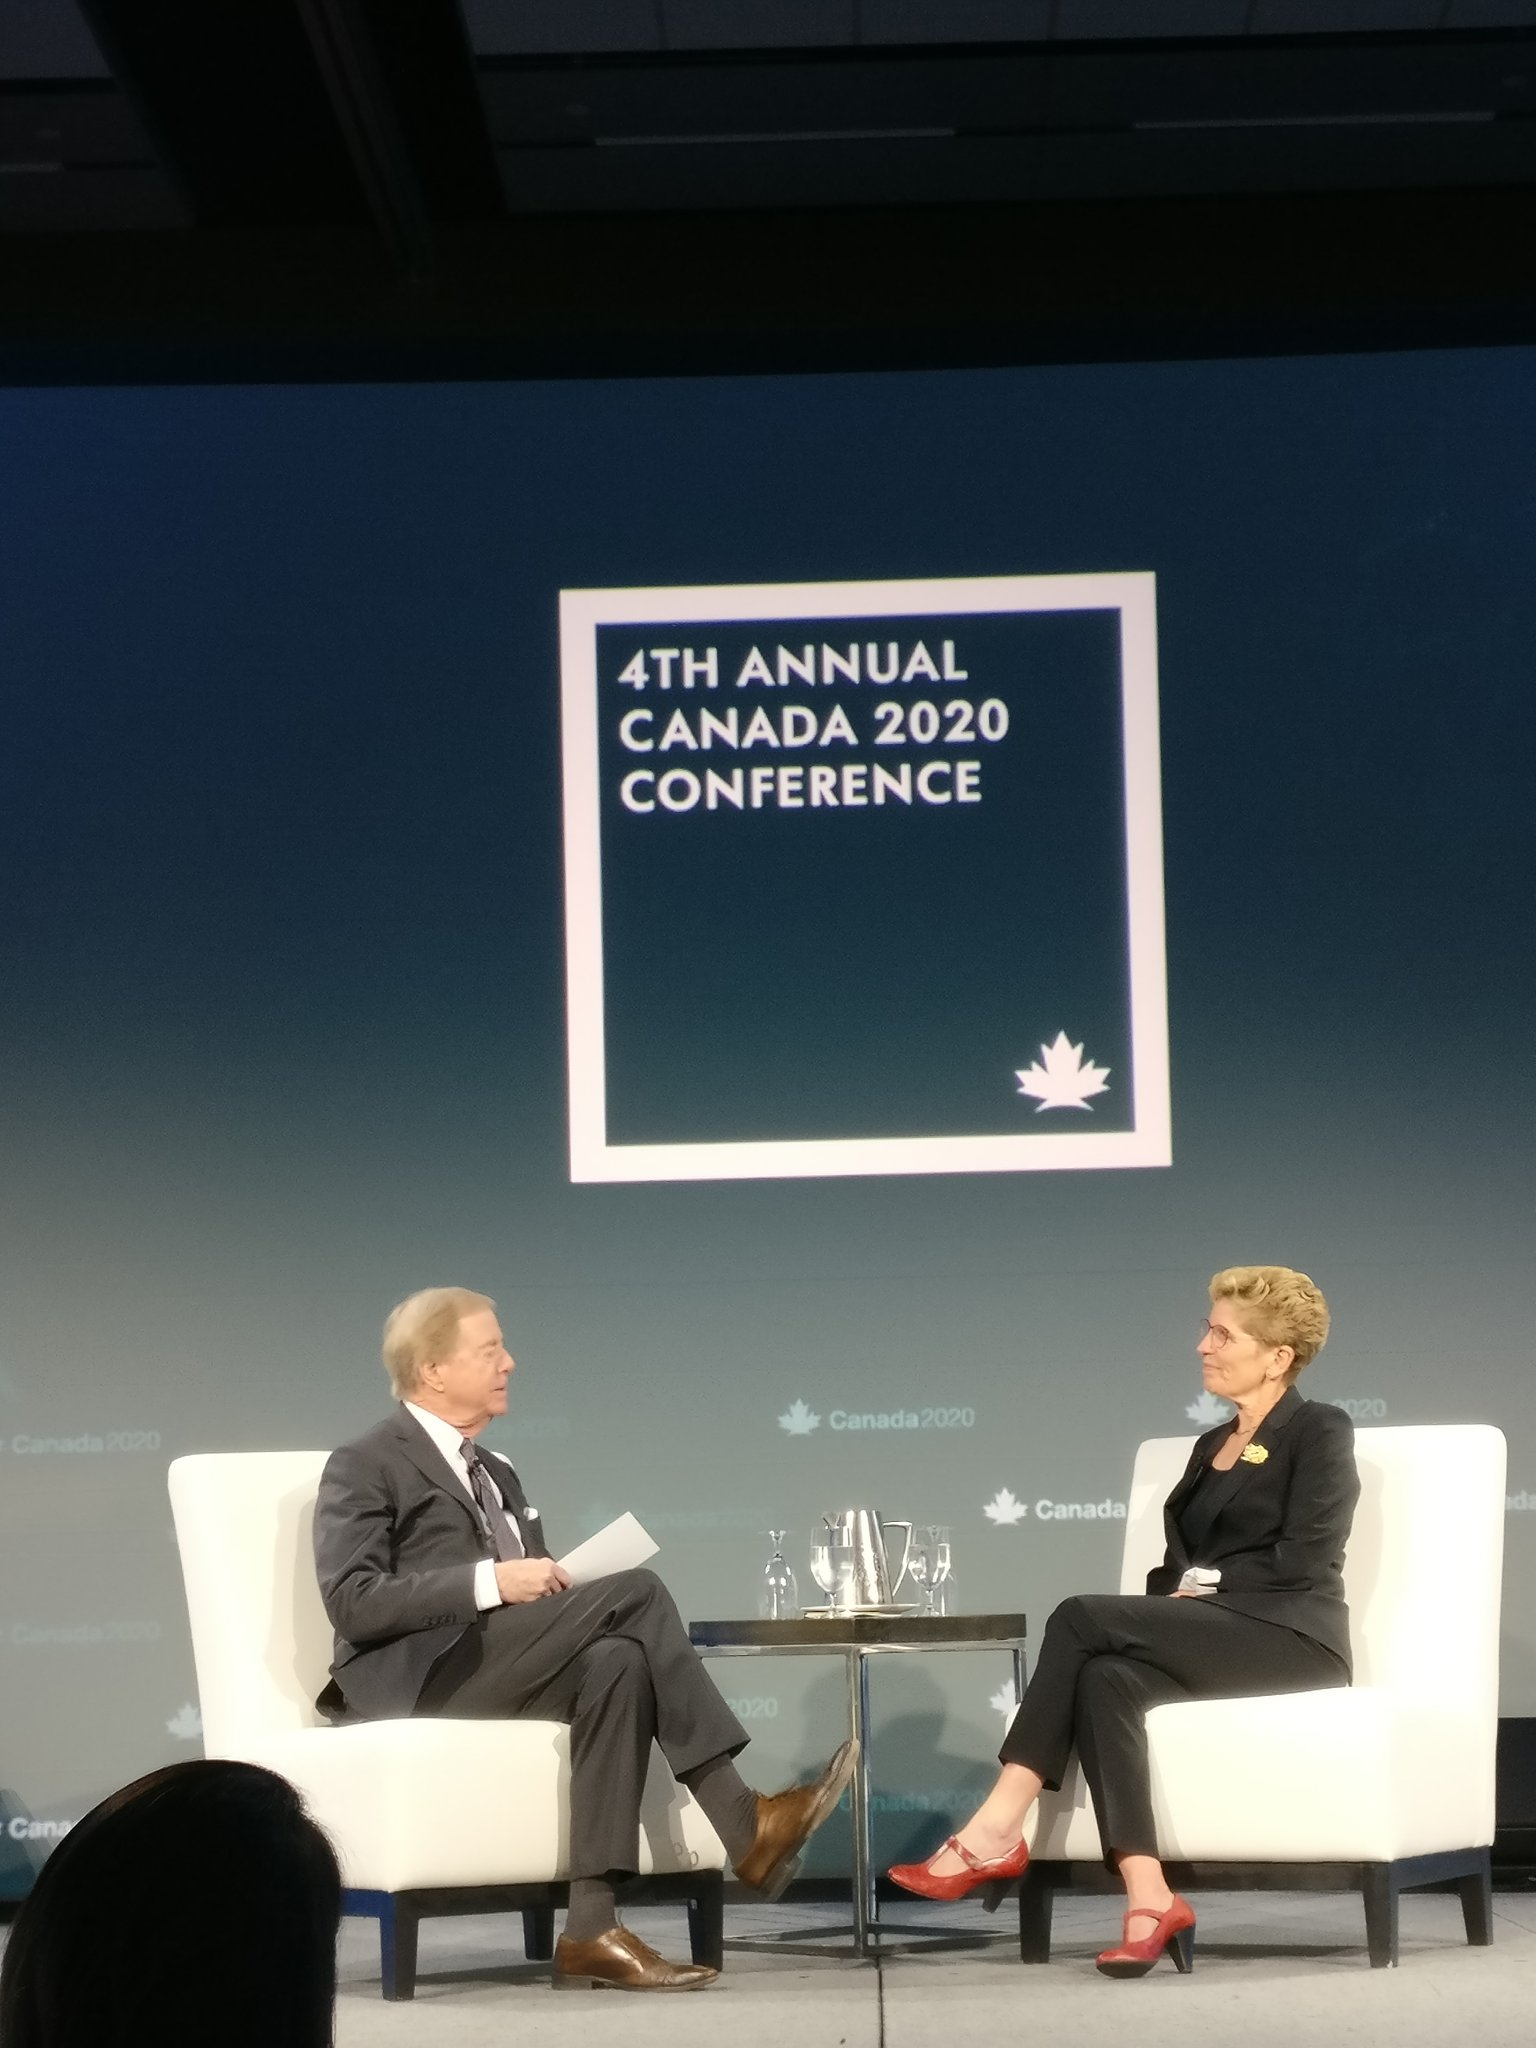 Don Newman and Premier @Kathleen_Wynne having a fireside chat about building a fair and innovative economy. #Canada2020 https://t.co/GIRu6U6yuJ